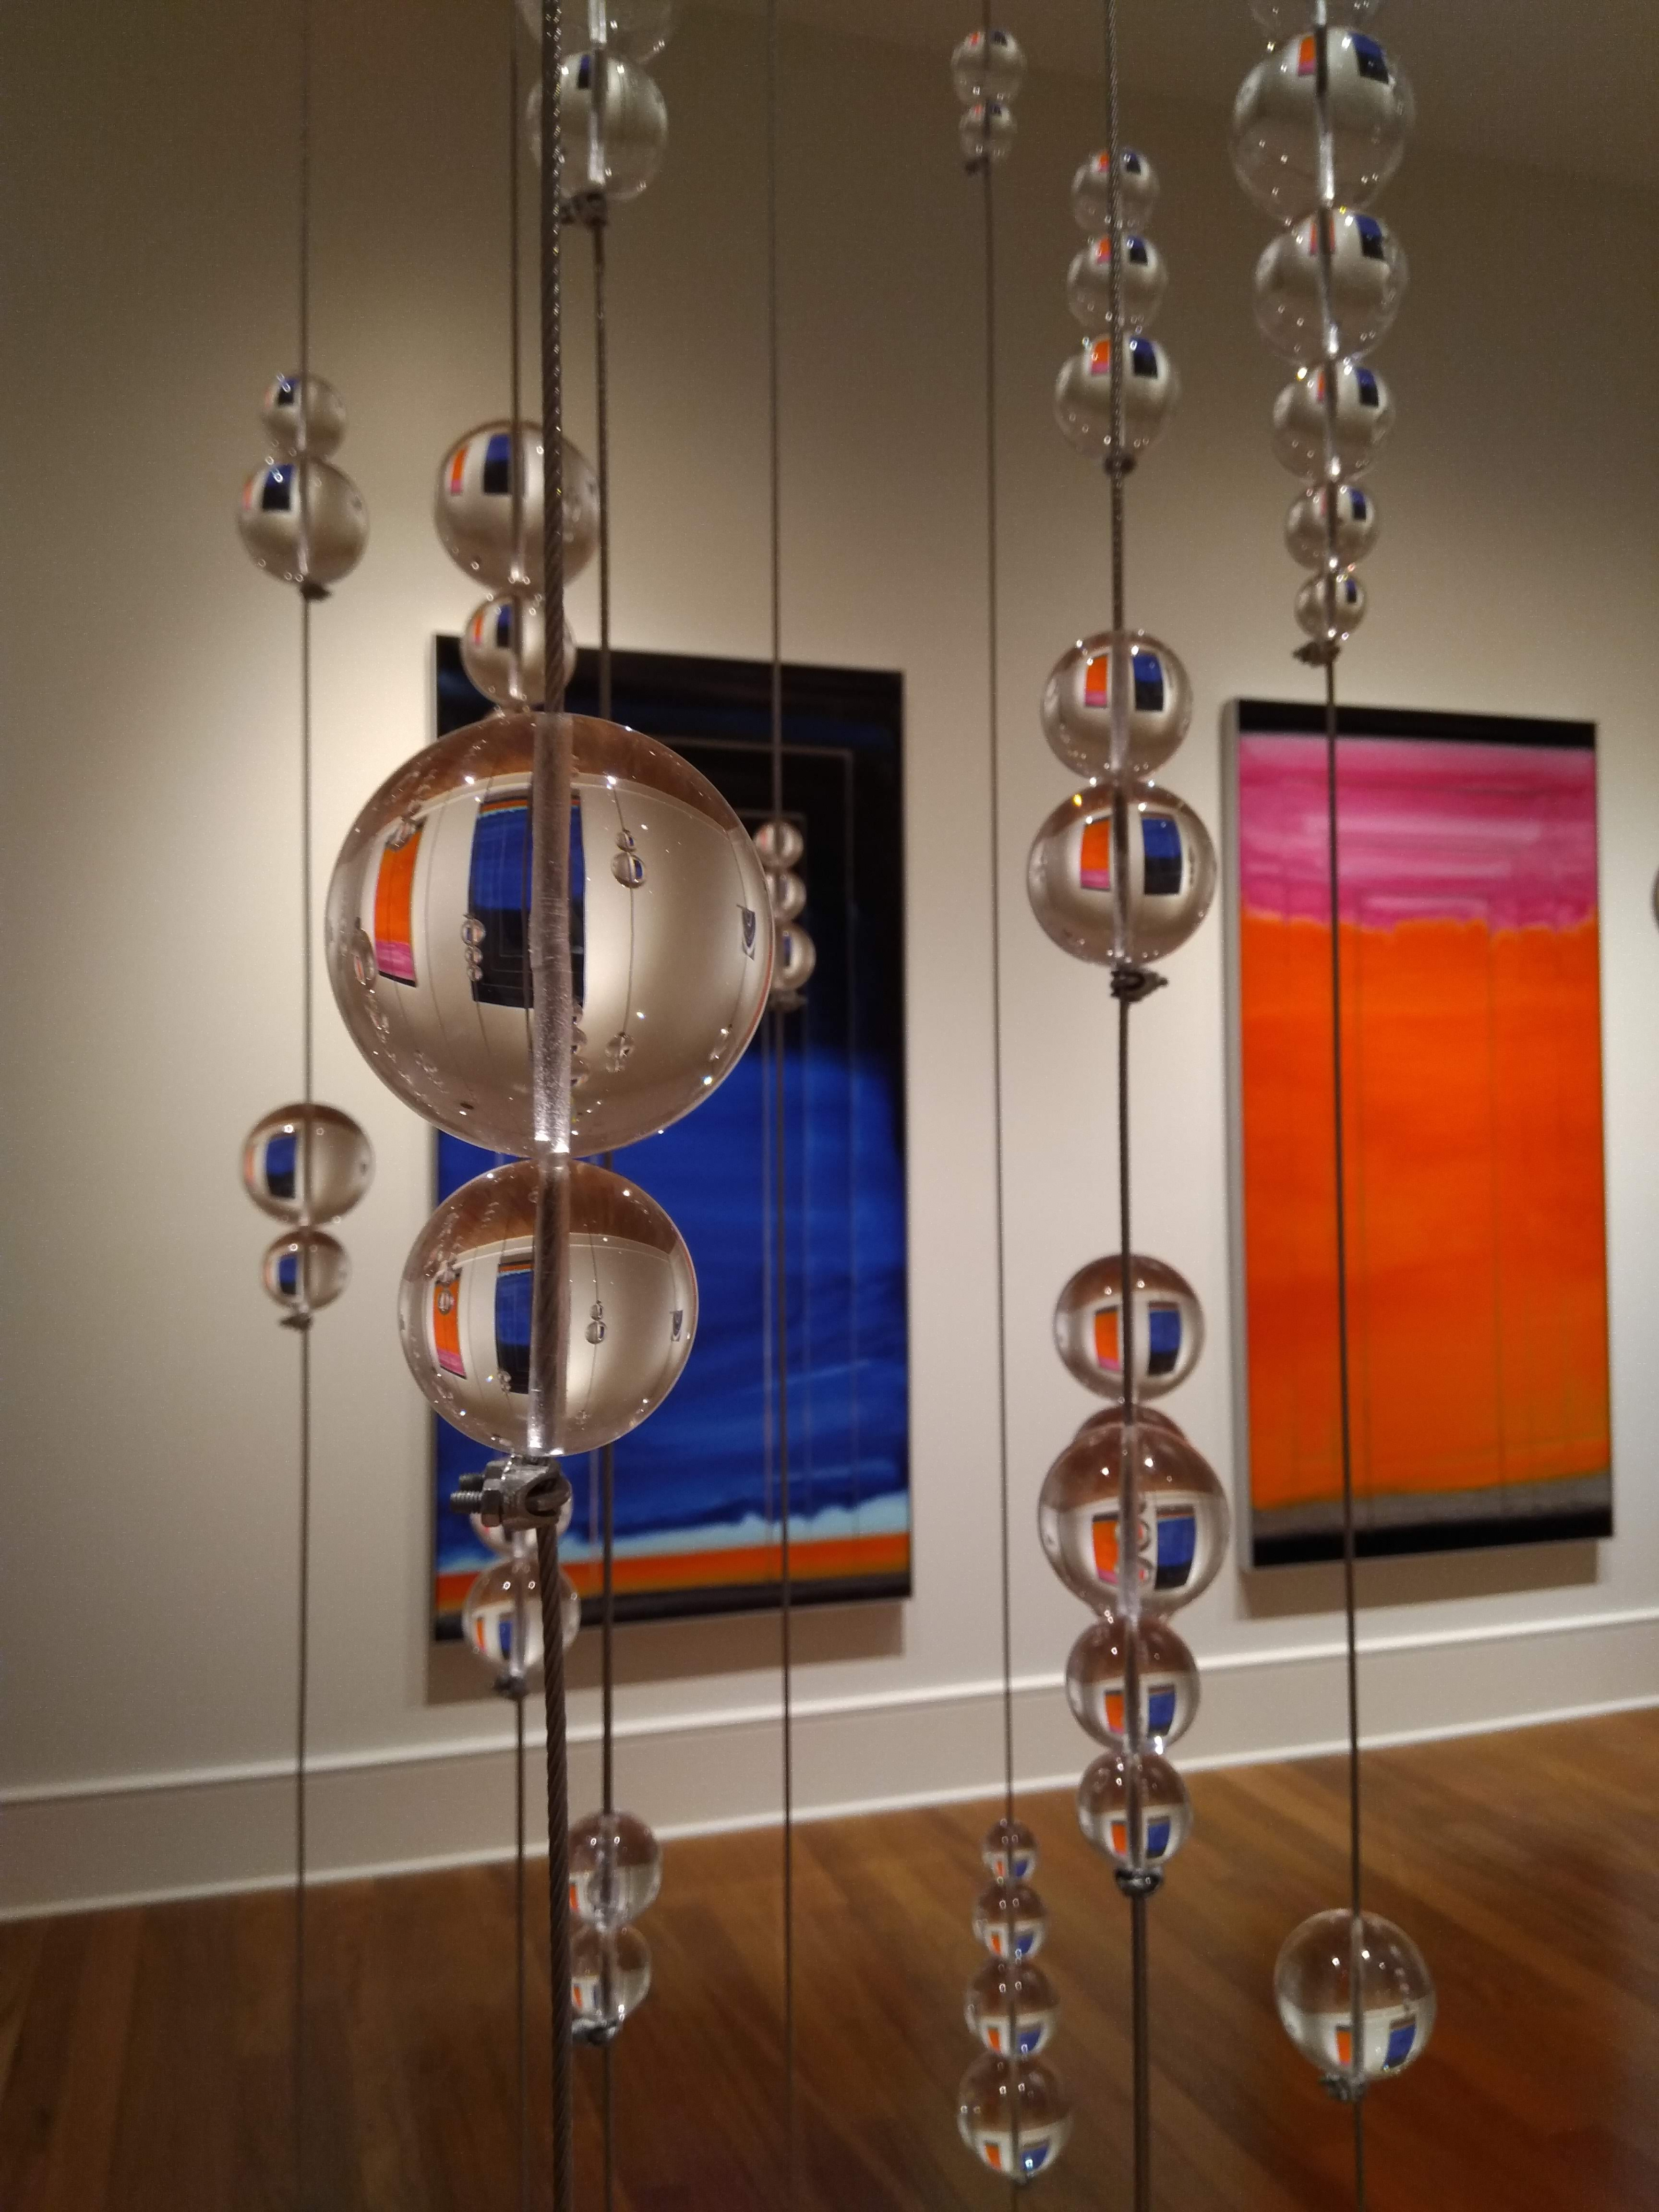 Lisa Beck @ The Gallery, Milhaukee (USA)